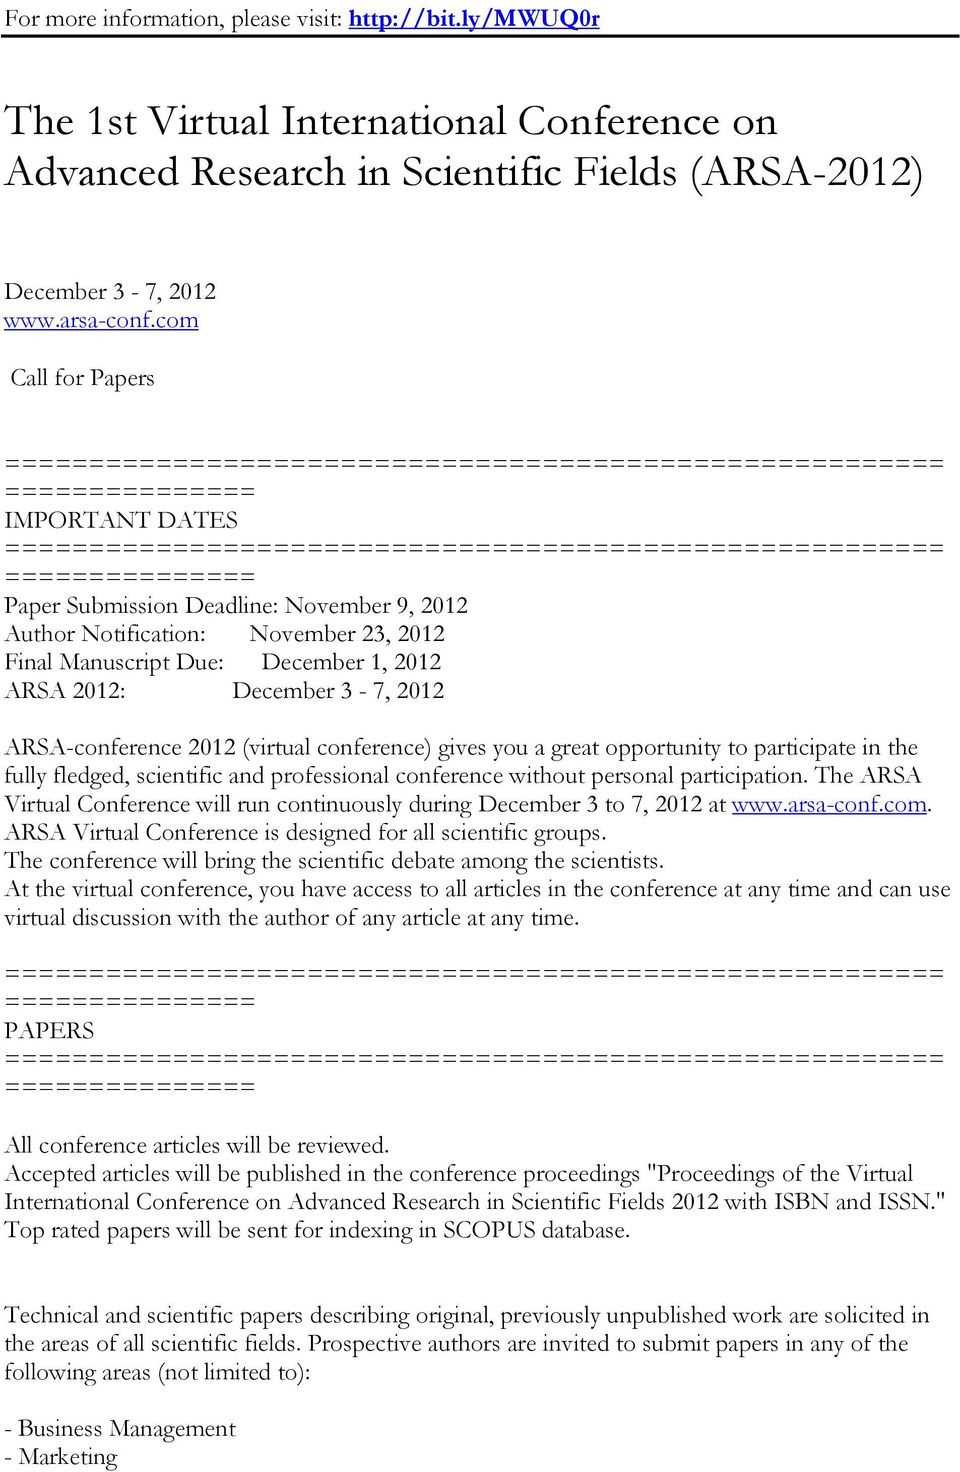 Deadline: November 9, 2012 Author Notification: November 23, 2012 Final Manuscript Due: December 1, 2012 ARSA 2012: December 3-7, 2012 ARSA-conference 2012 (virtual conference) gives you a great